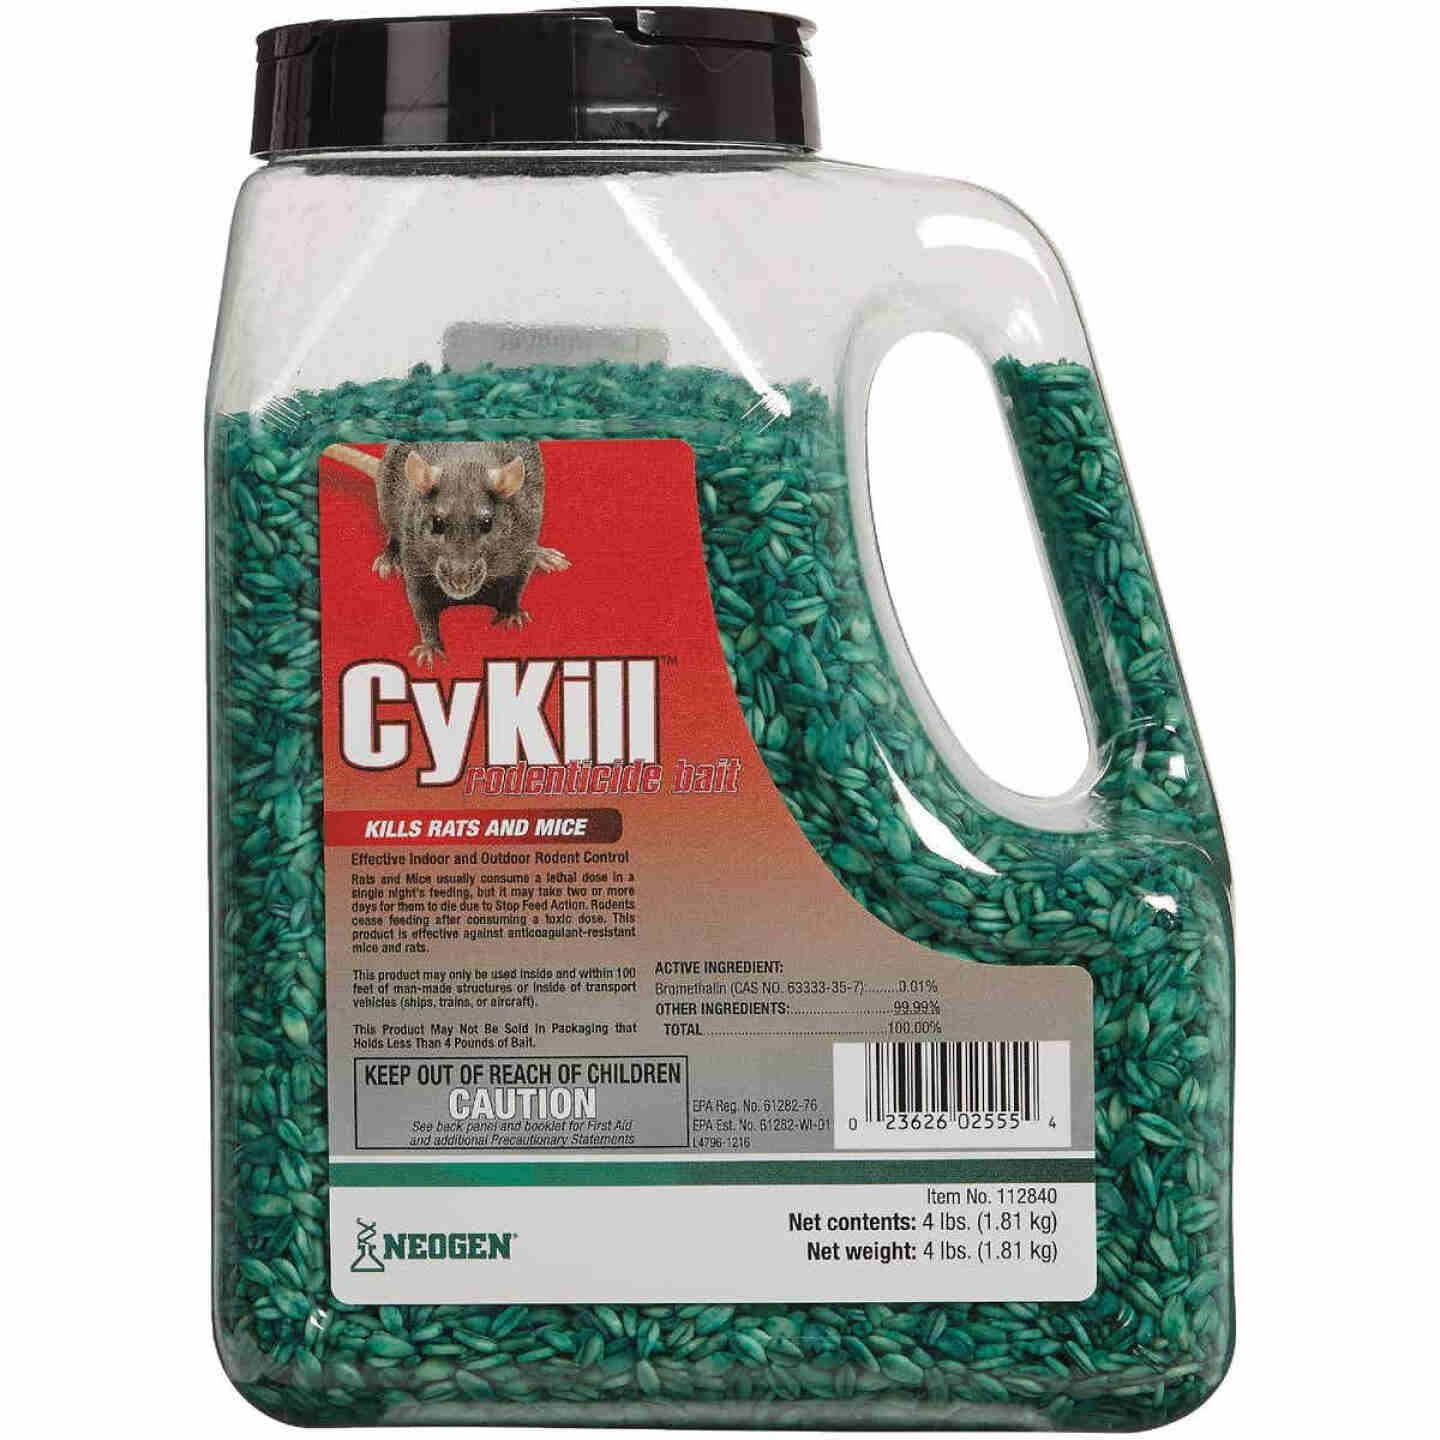 CyKill Seed Meal Bait Rat And Mouse Poison, 4 Lb. Image 2